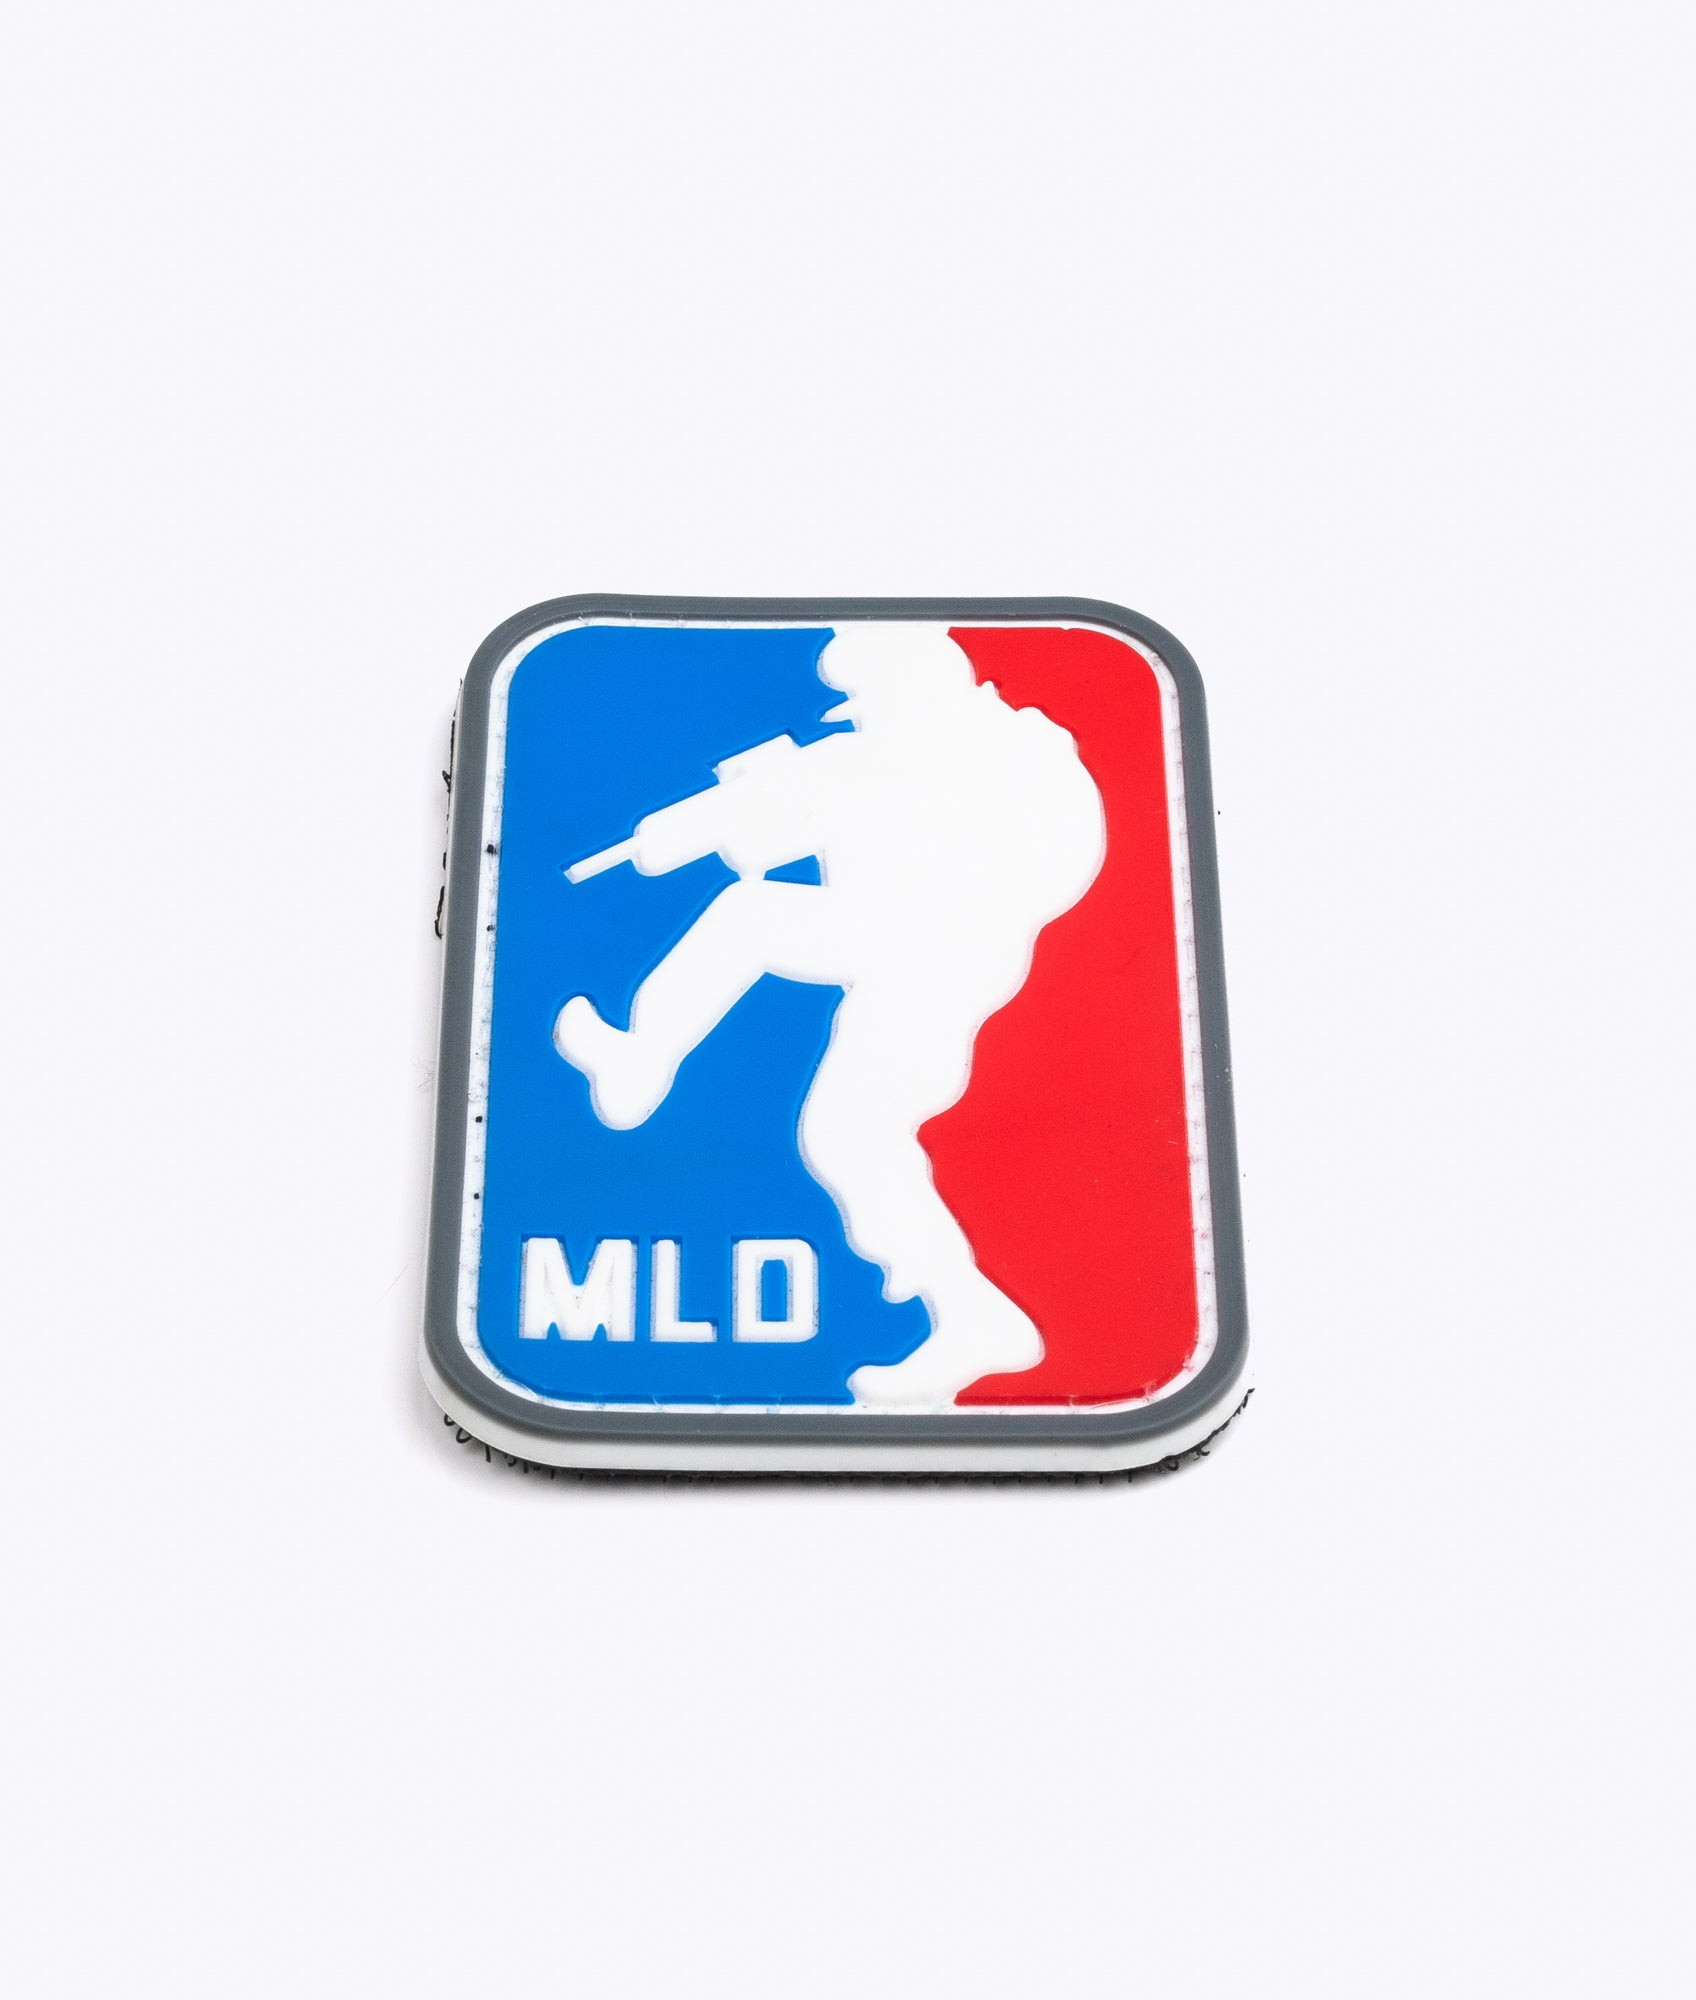 Major League Door Kicker PVC Patch